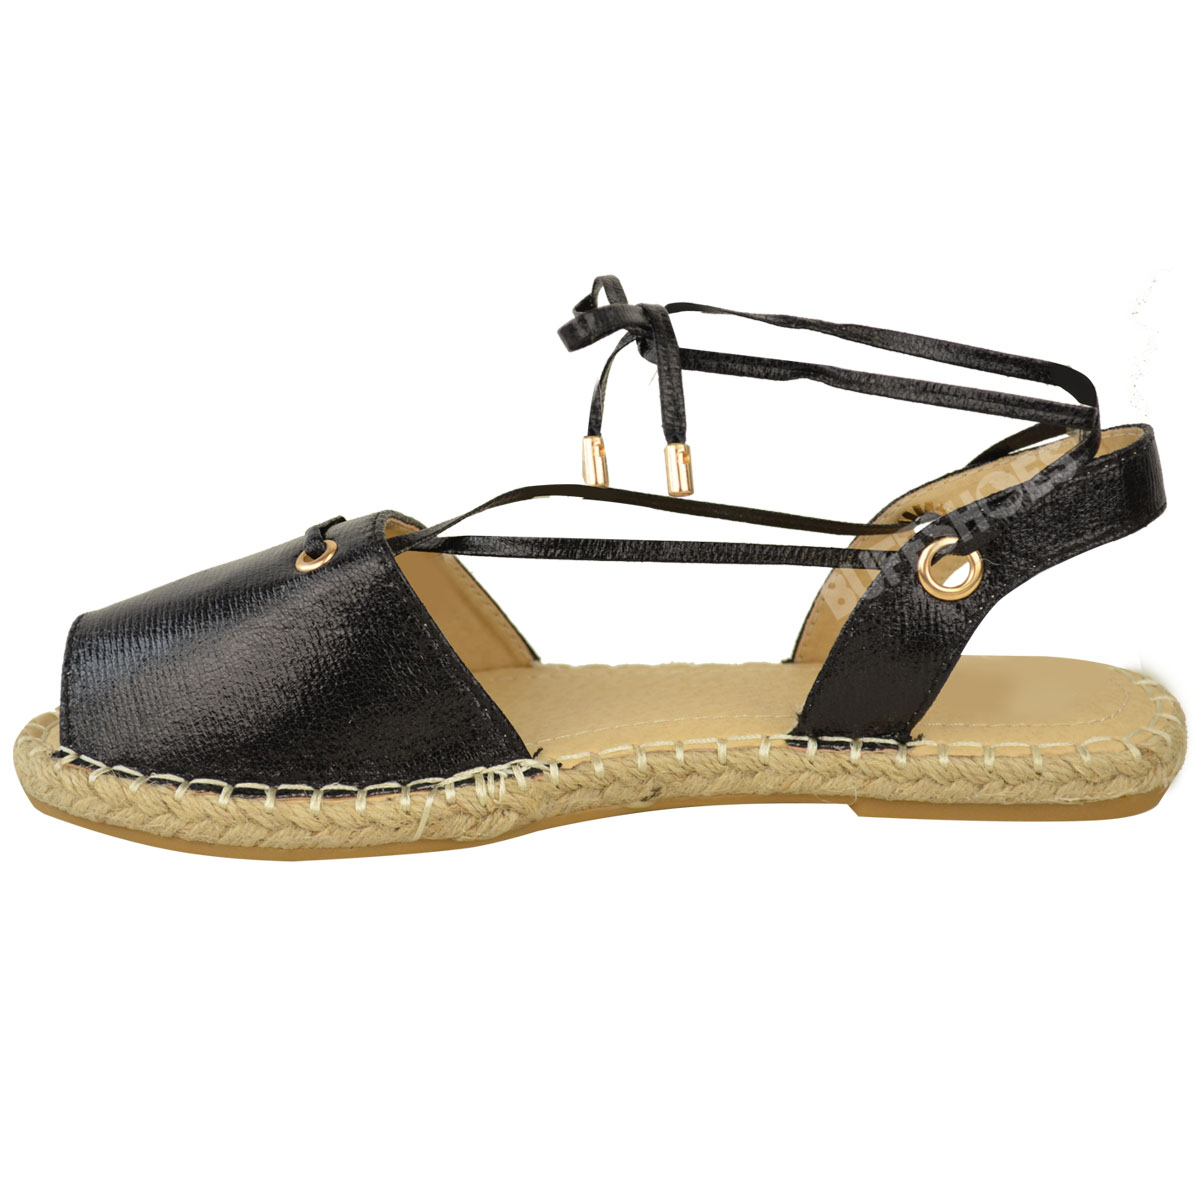 Free shipping on women's flats at coolmfilehj.cf Shop ballet flats, loafer flats, mule flats and black flats from the best brands including Tory Burch, TOMS, .